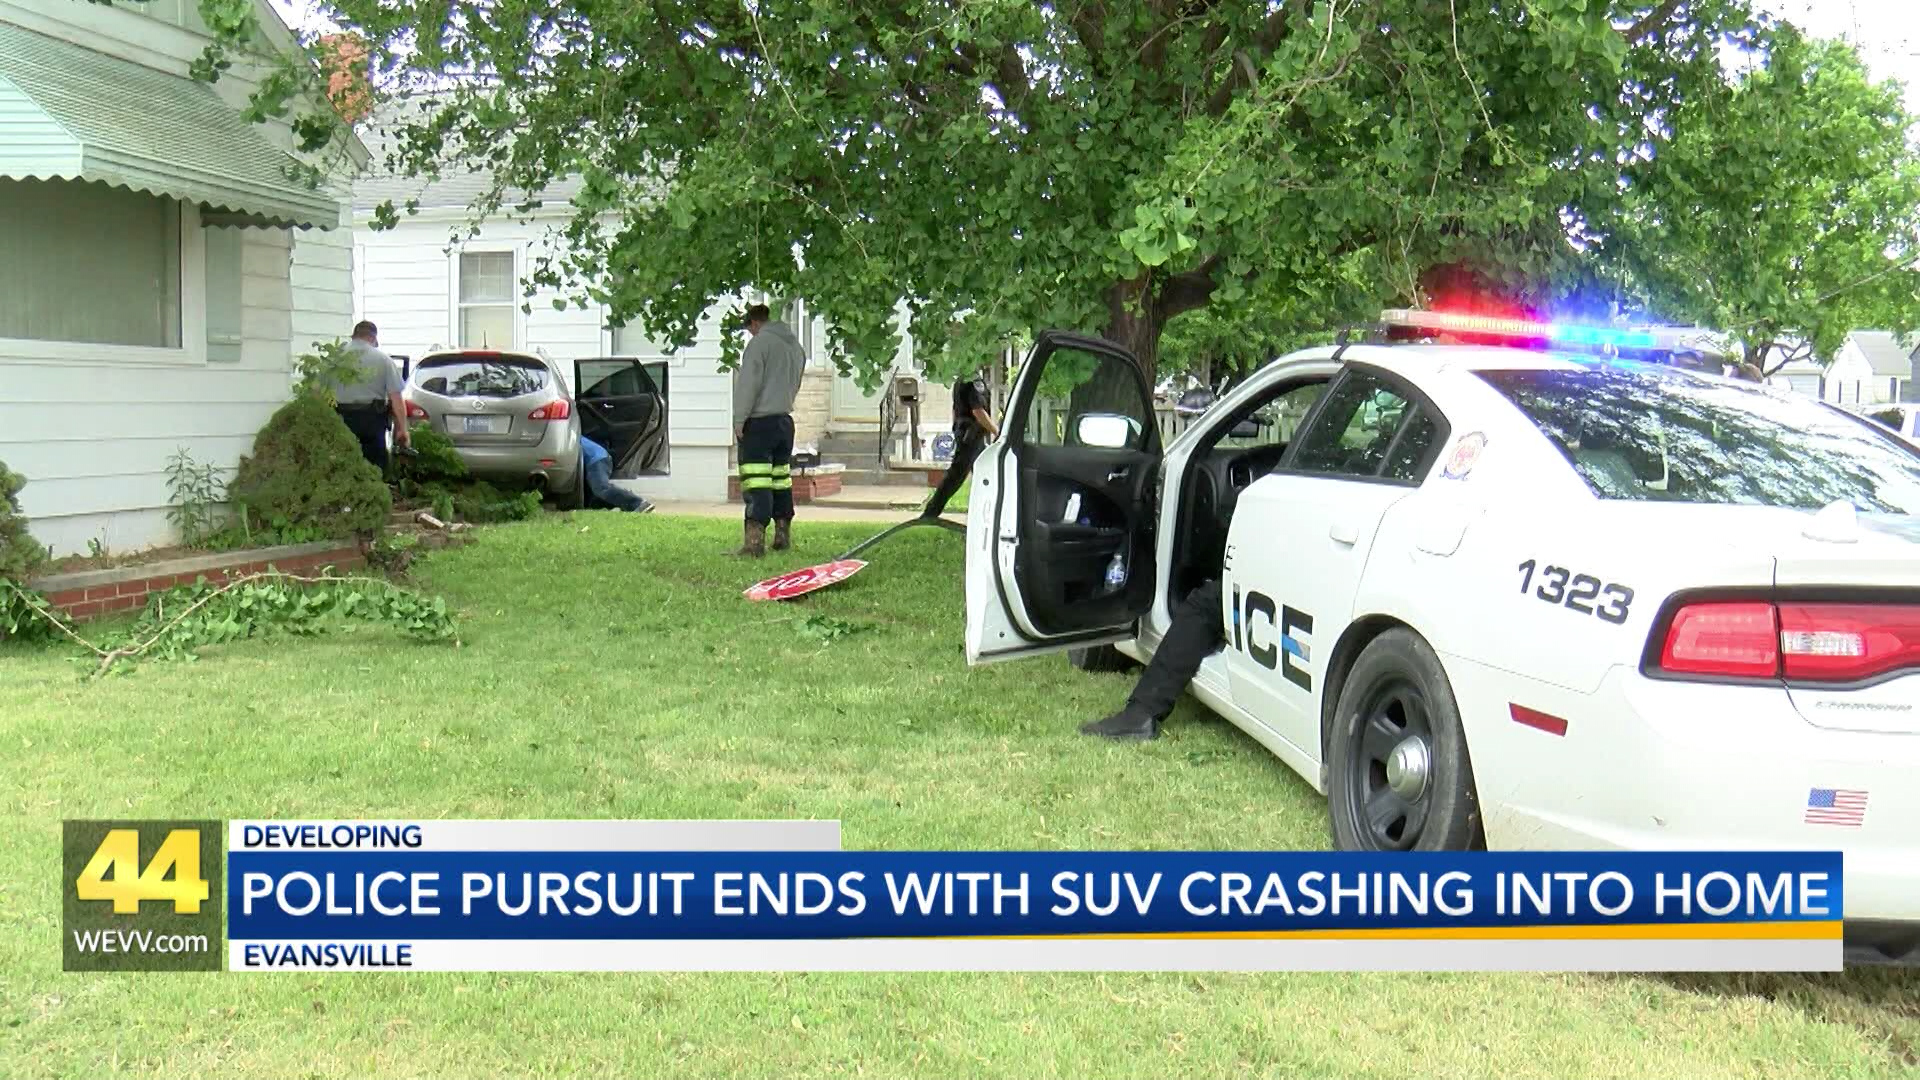 Image for Police Pursuit Ends with SUV Crashing Into Home